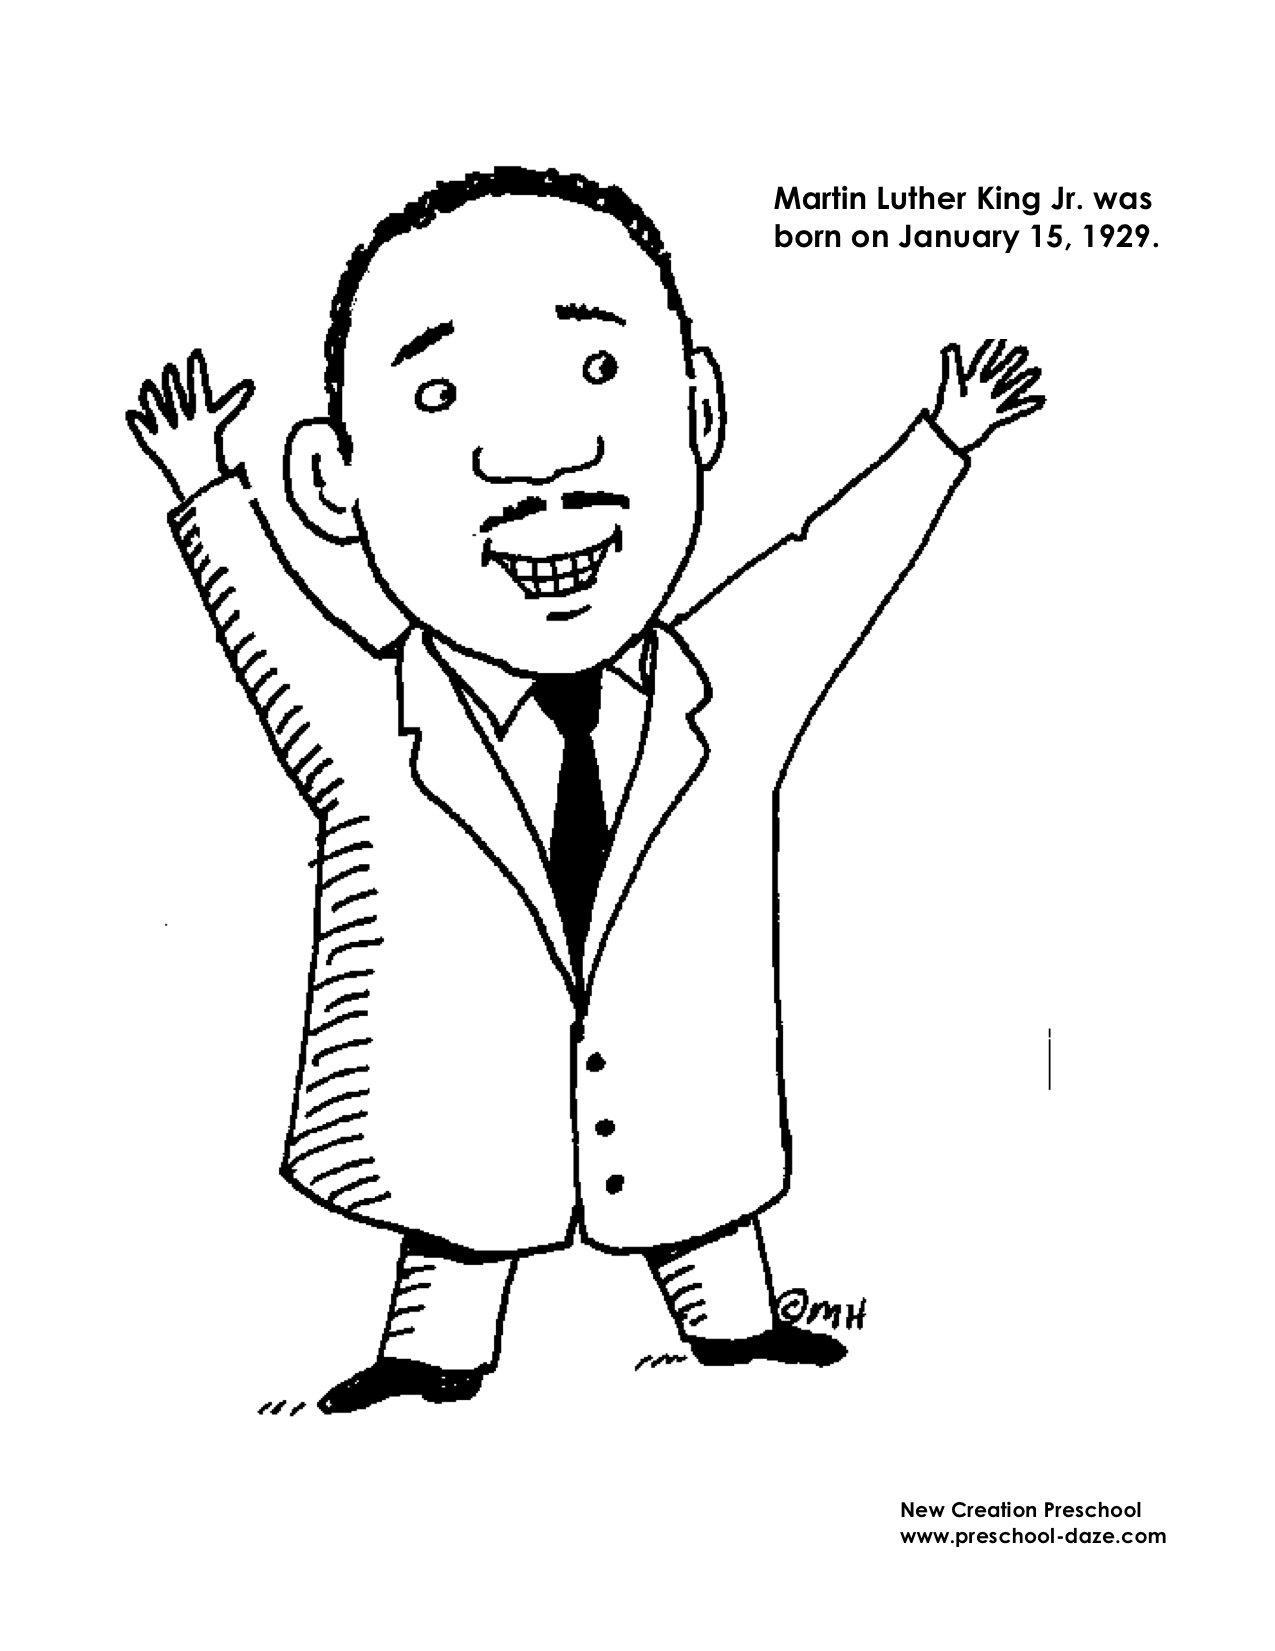 Martin Luther King Coloring Sheets For Kindergarten Search Results Category Pages